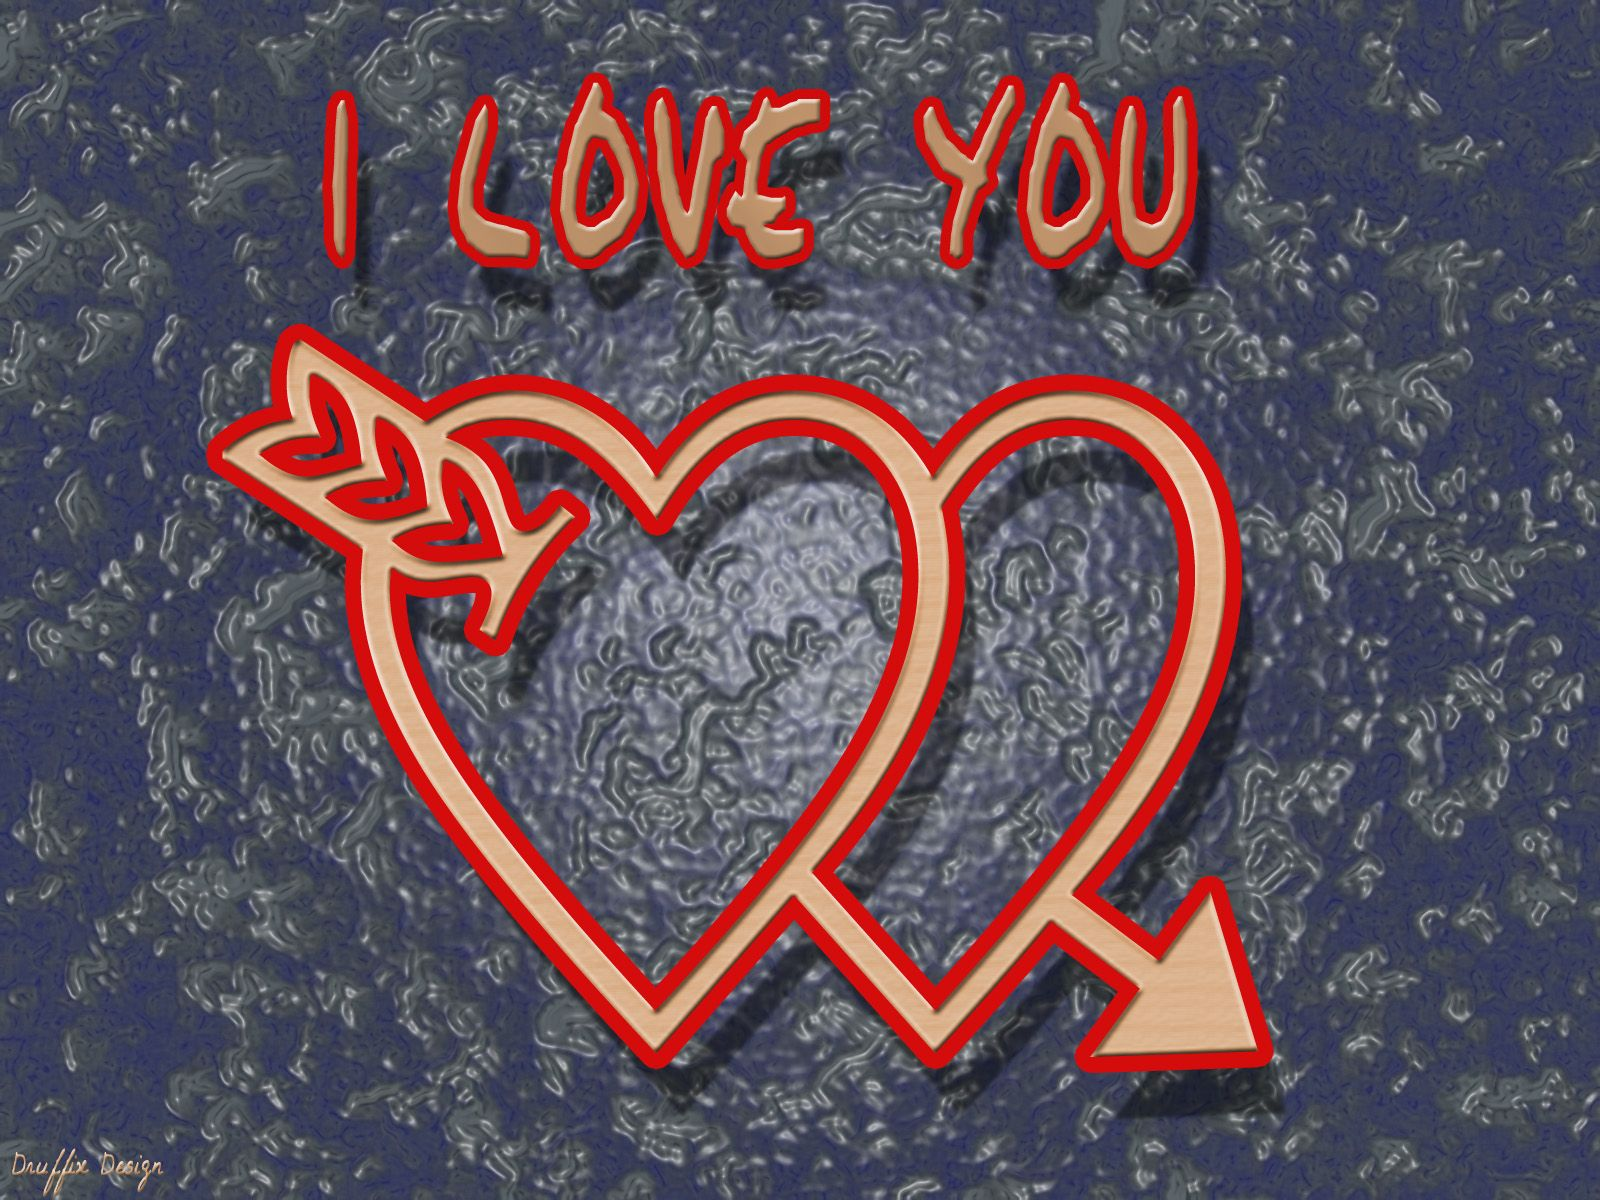 Did i love you new song download